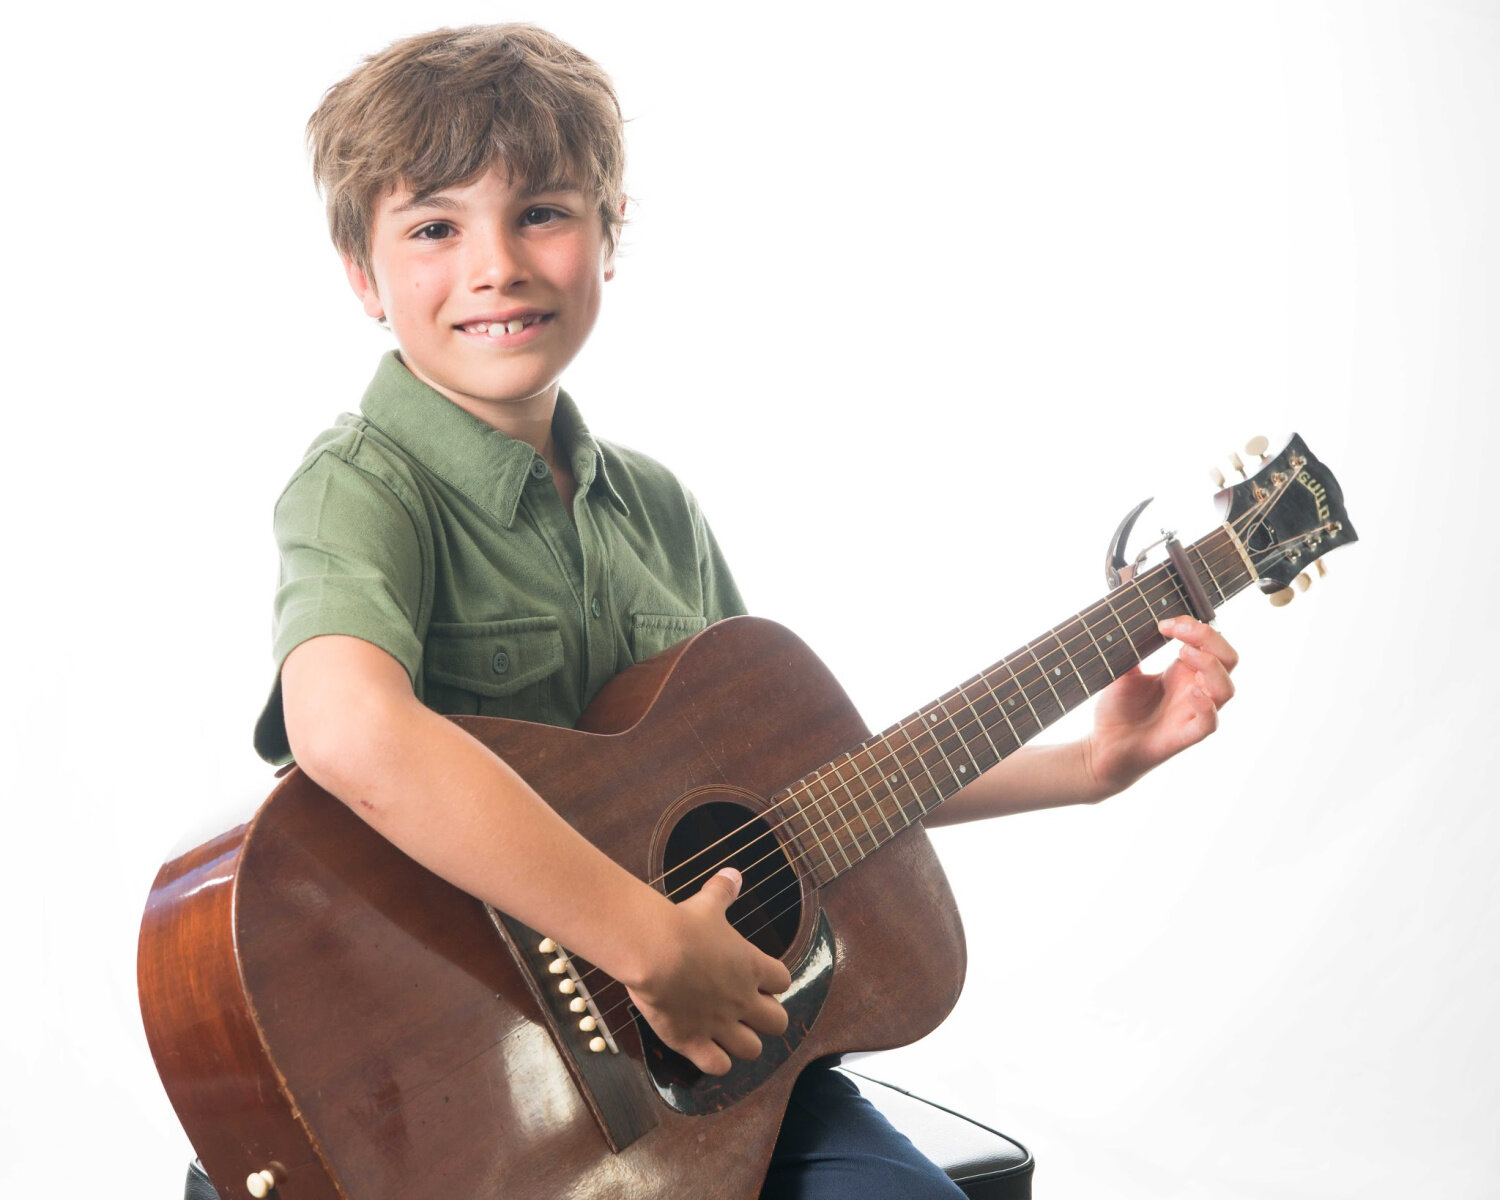 Guitar Lessons   in Mendota Heights   for beginner, intermediate, and advanced students of all ages   CALL 651-263-9475 TO SCHEDULE YOUR FIRST LESSON   REQUEST INFO